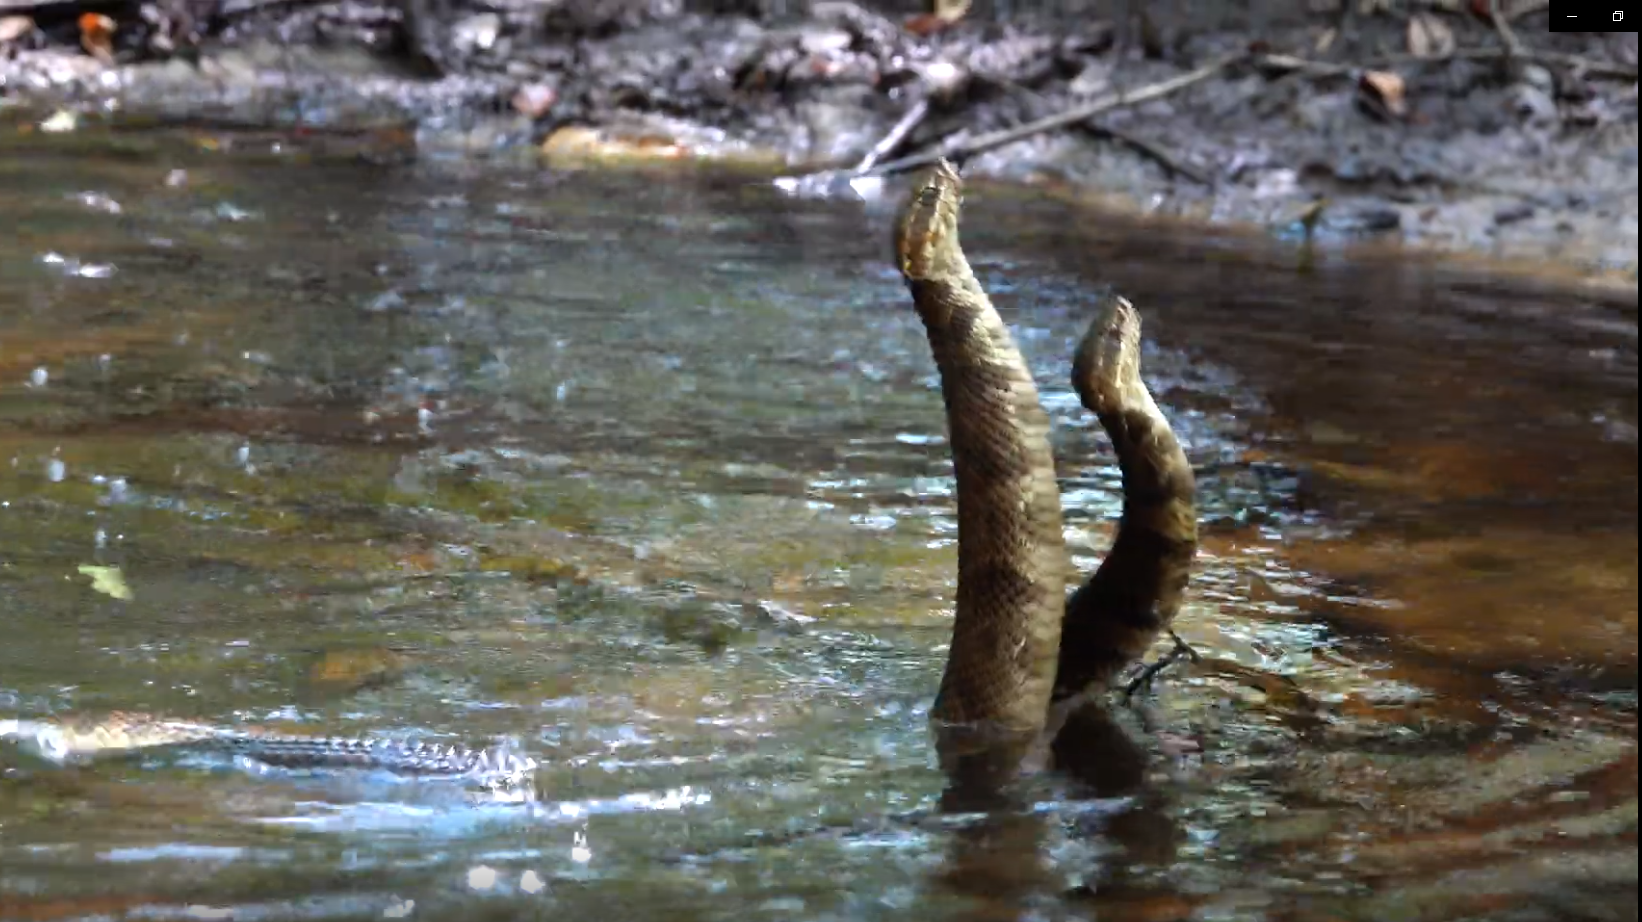 DNR: Male cottonmouth snakes wrestle for dominance in Bulloch County swamp